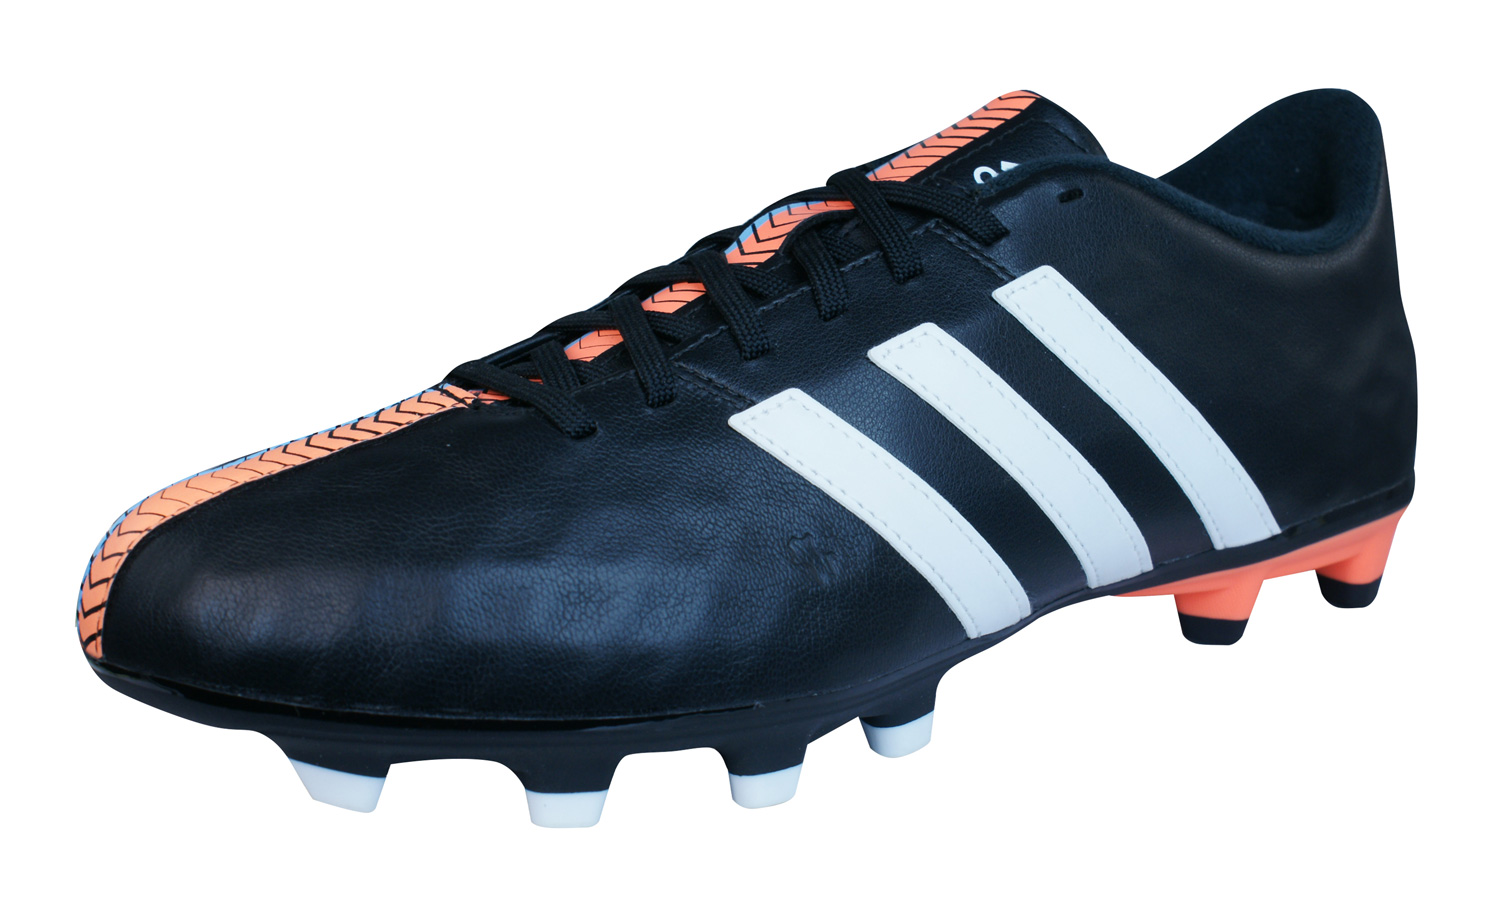 adidas 11 fg mens leather football boots cleats black